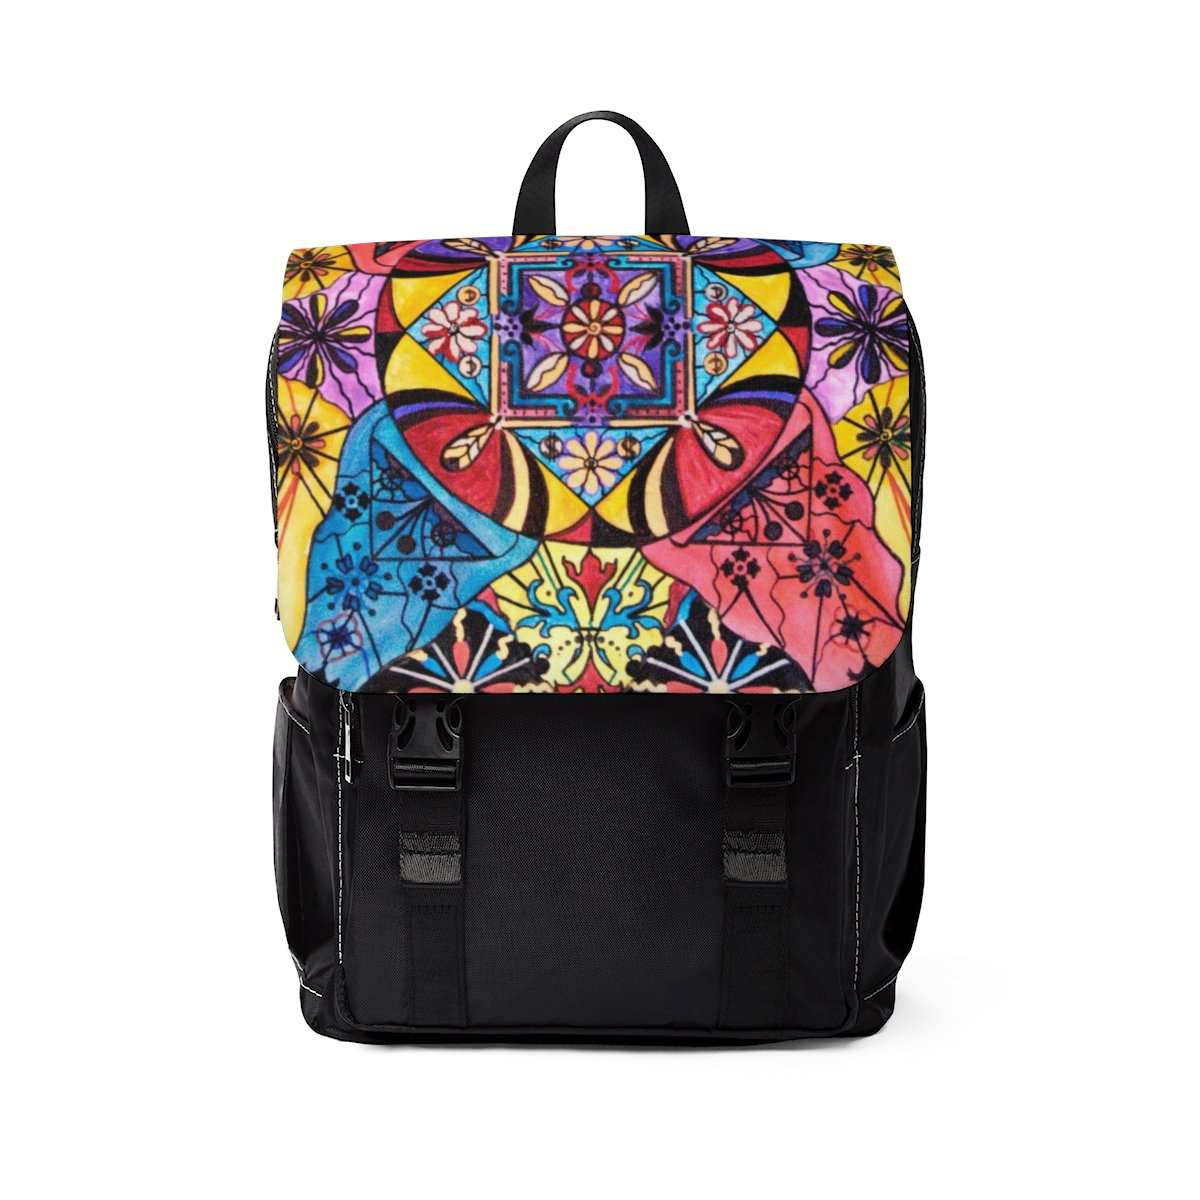 Worldly Abundance - Unisex Casual Shoulder Backpack